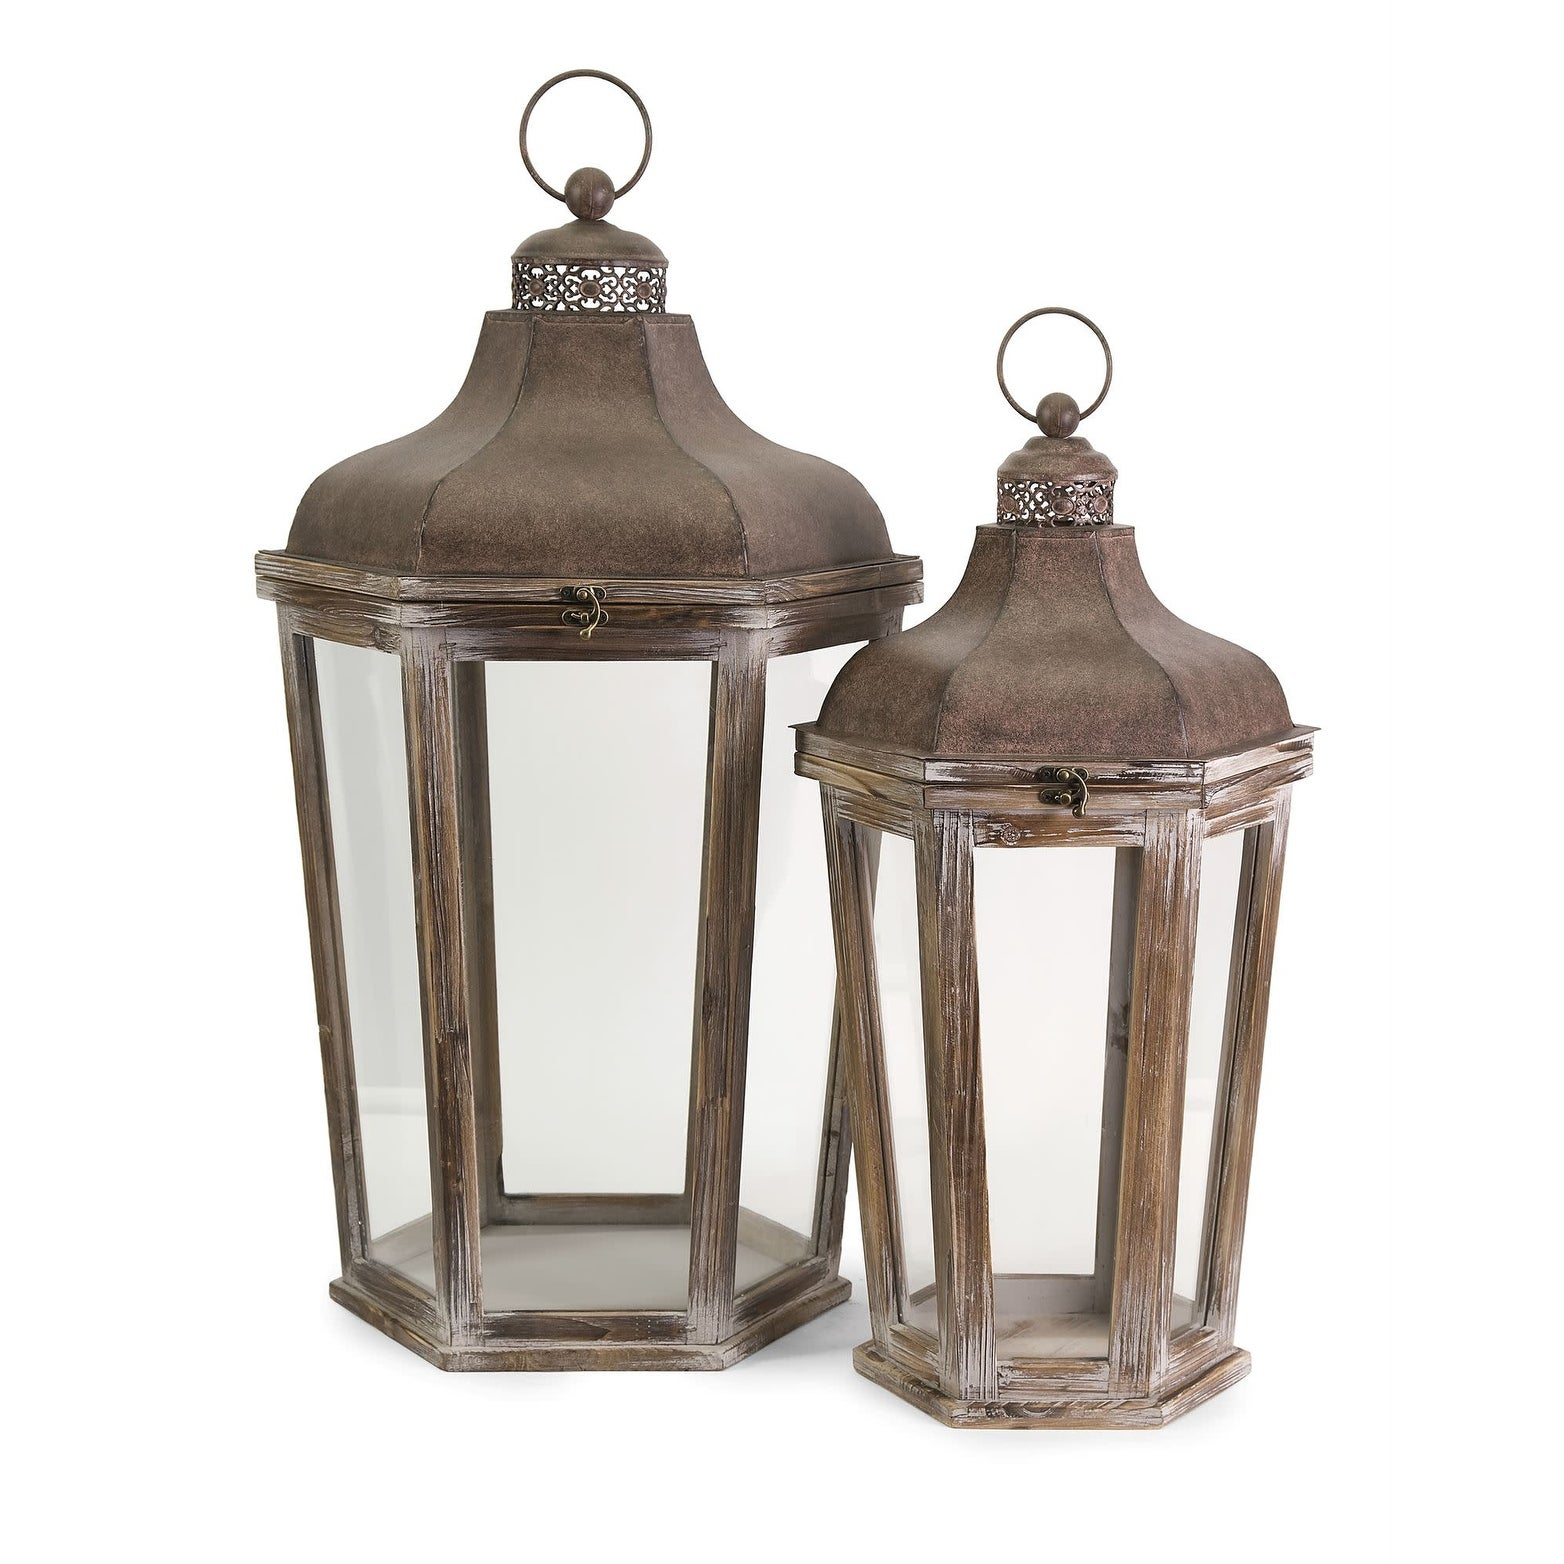 IMAX Home 89020-2  Layla 2 Piece Iron and MDF Pillar Lantern Candle Holder Set - Brown